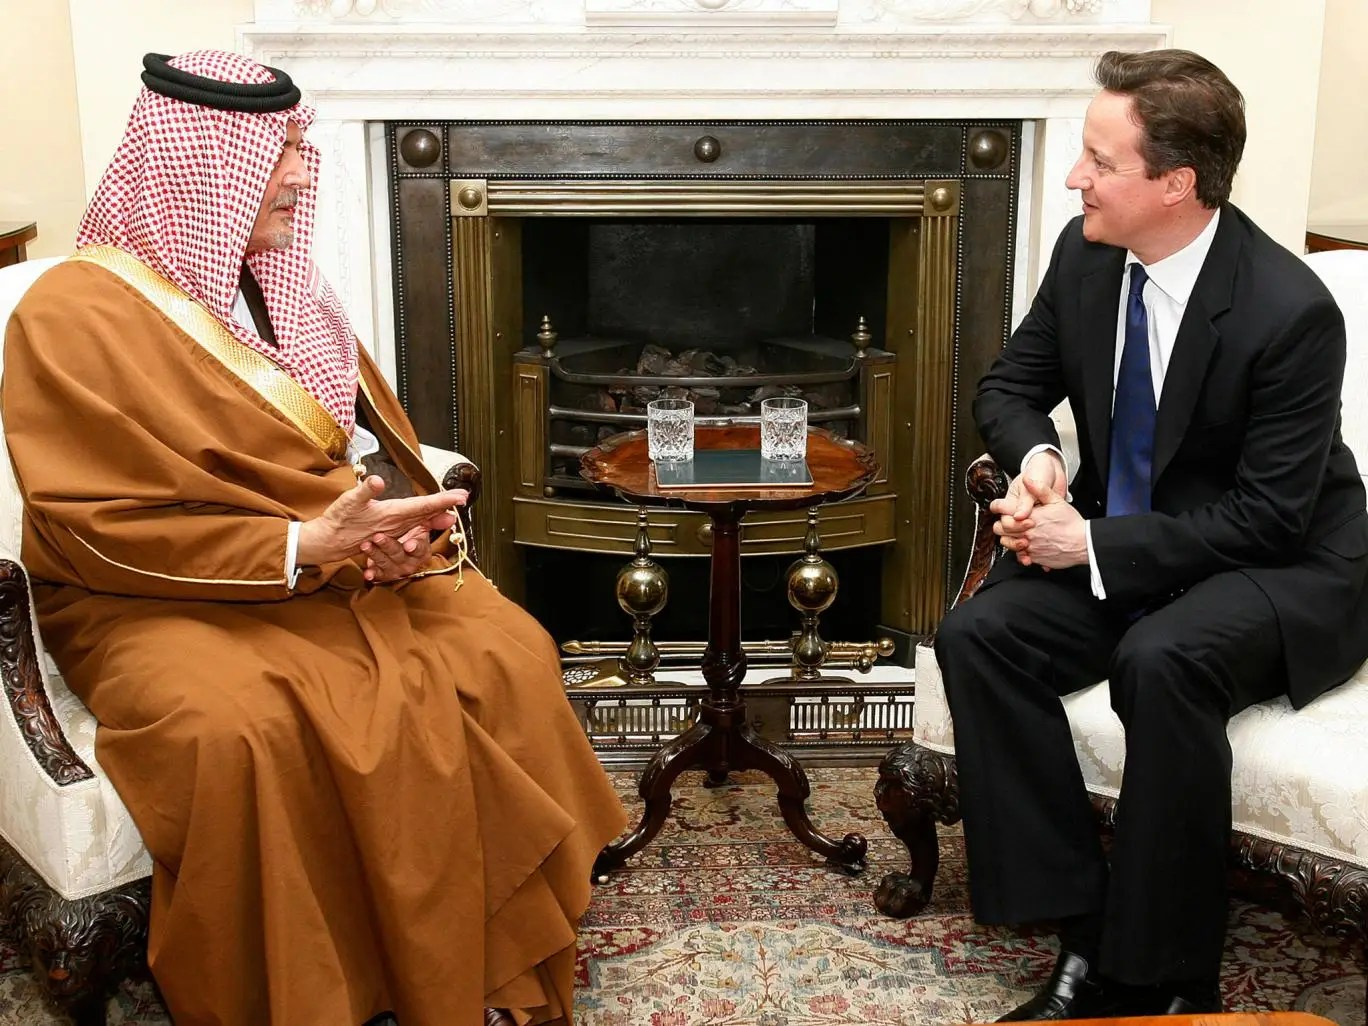 David Cameron meets with Saudi Arabia's Foreign Minister Prince Saud al-Faisal inside 10 Downing Street in London, on March 22, 2011. Photo: Akira Suemori - WPA Pool/Getty Images